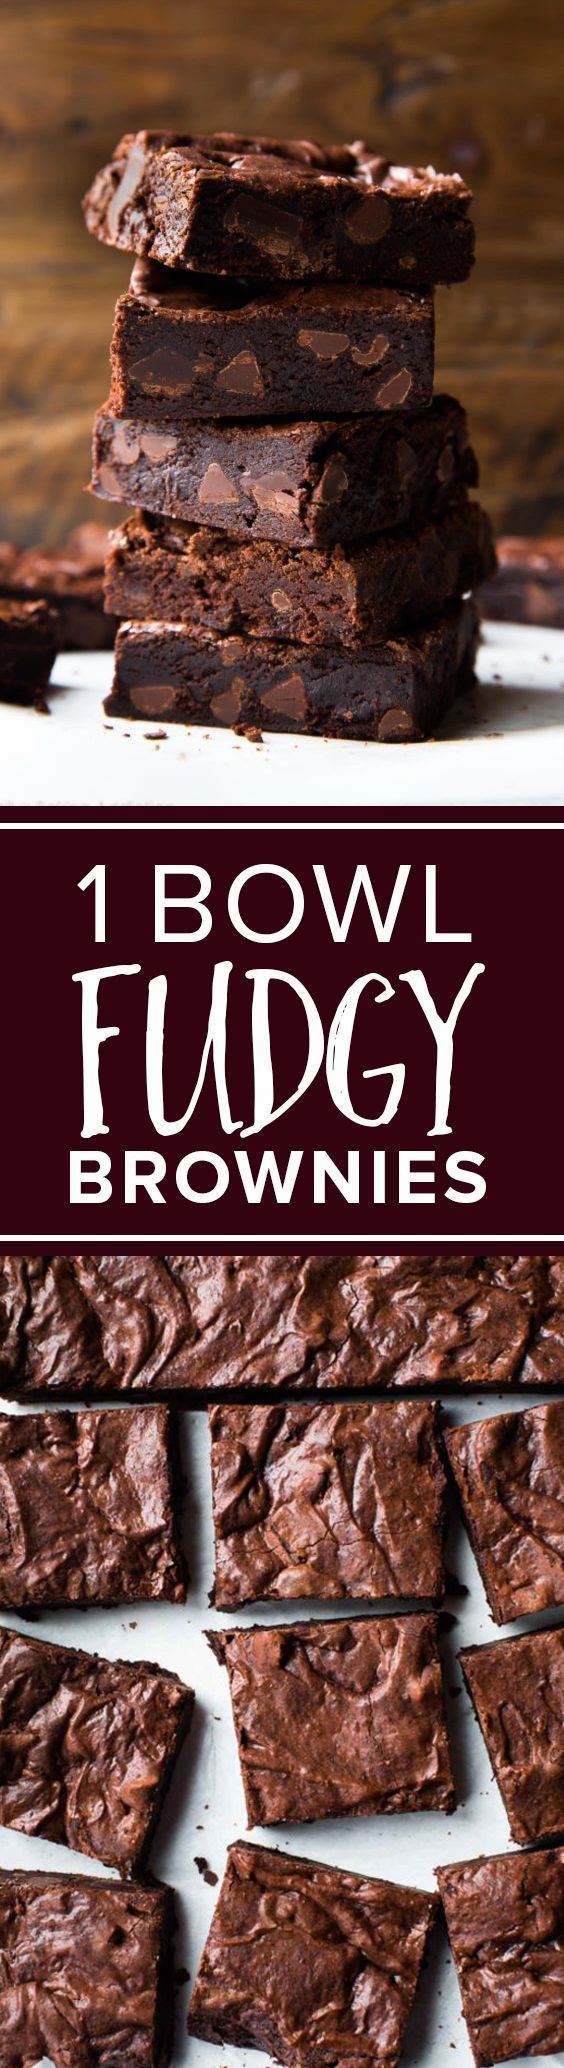 You only need 1 bowl for these SERIOUSLY fudgy super fudge homemade brownies! Recipe http://sallysbakingaddiction.com/2016/12/06/seriously-fudgy-homemade-brownies/